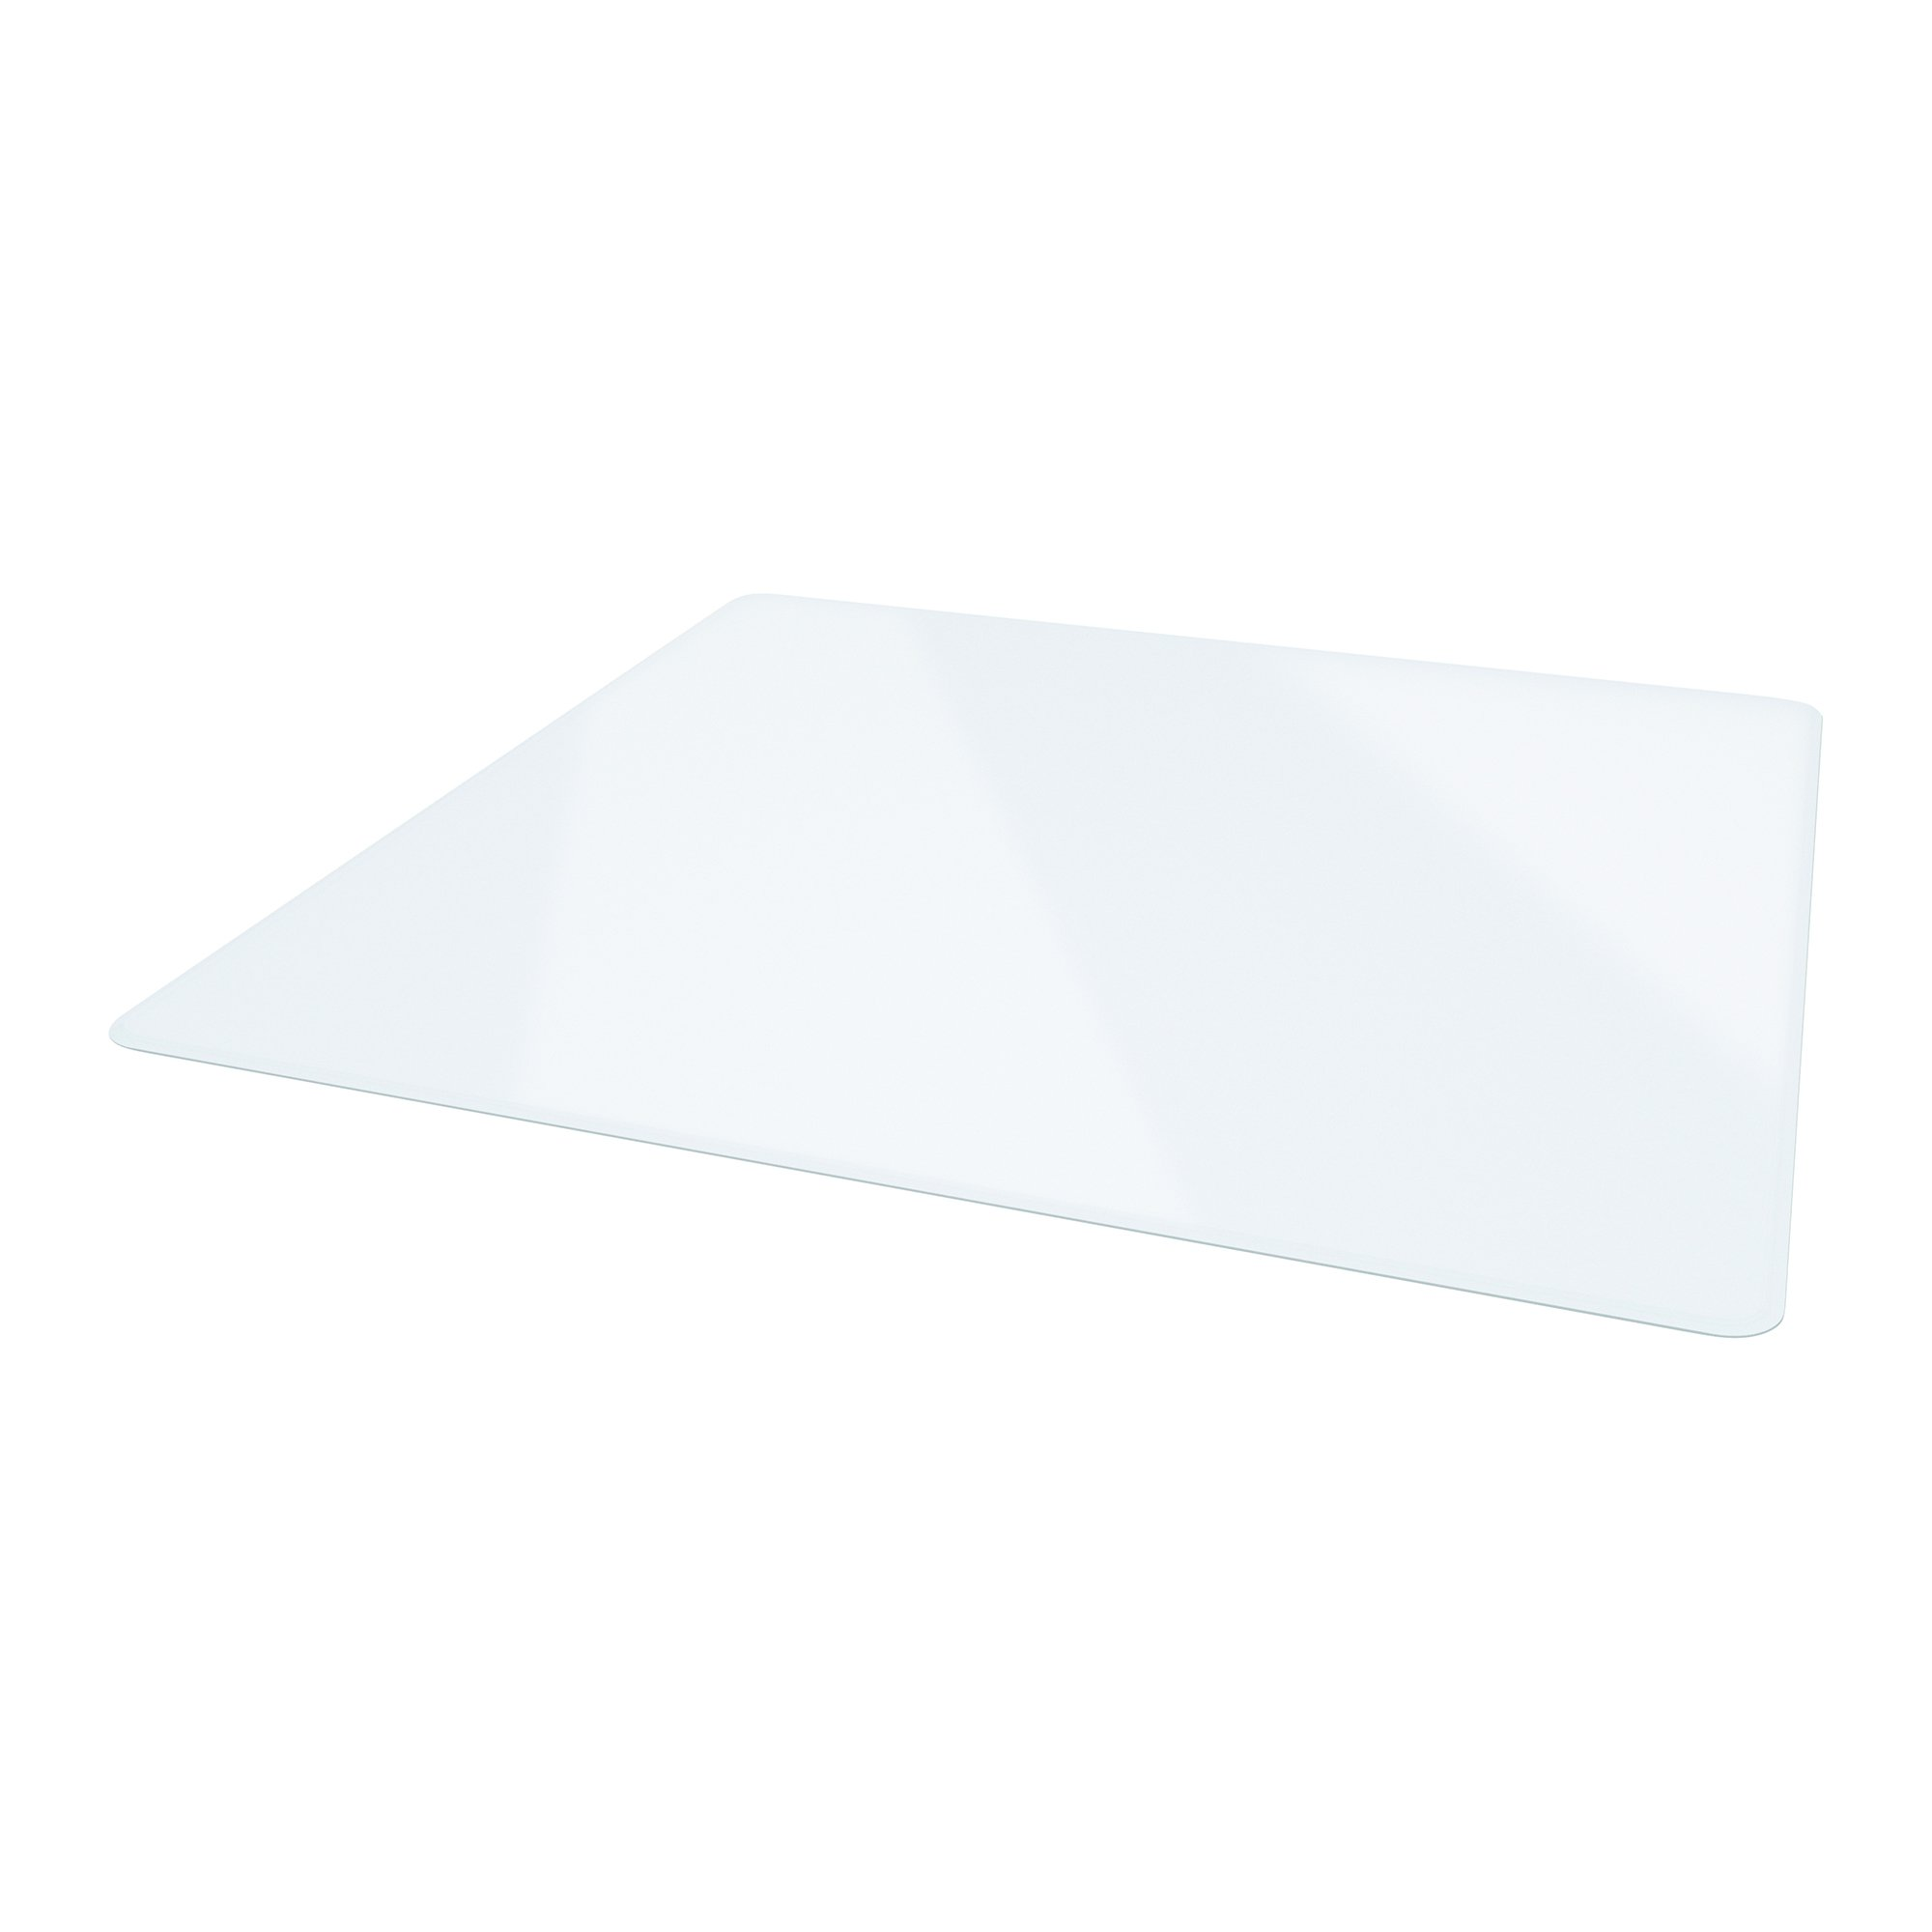 Deflecto Premium Clear Glass Chairmat, Multi-Surface Use, Rectangle, Beveled Edge, 48 x 60 Inches (CMG70434860)